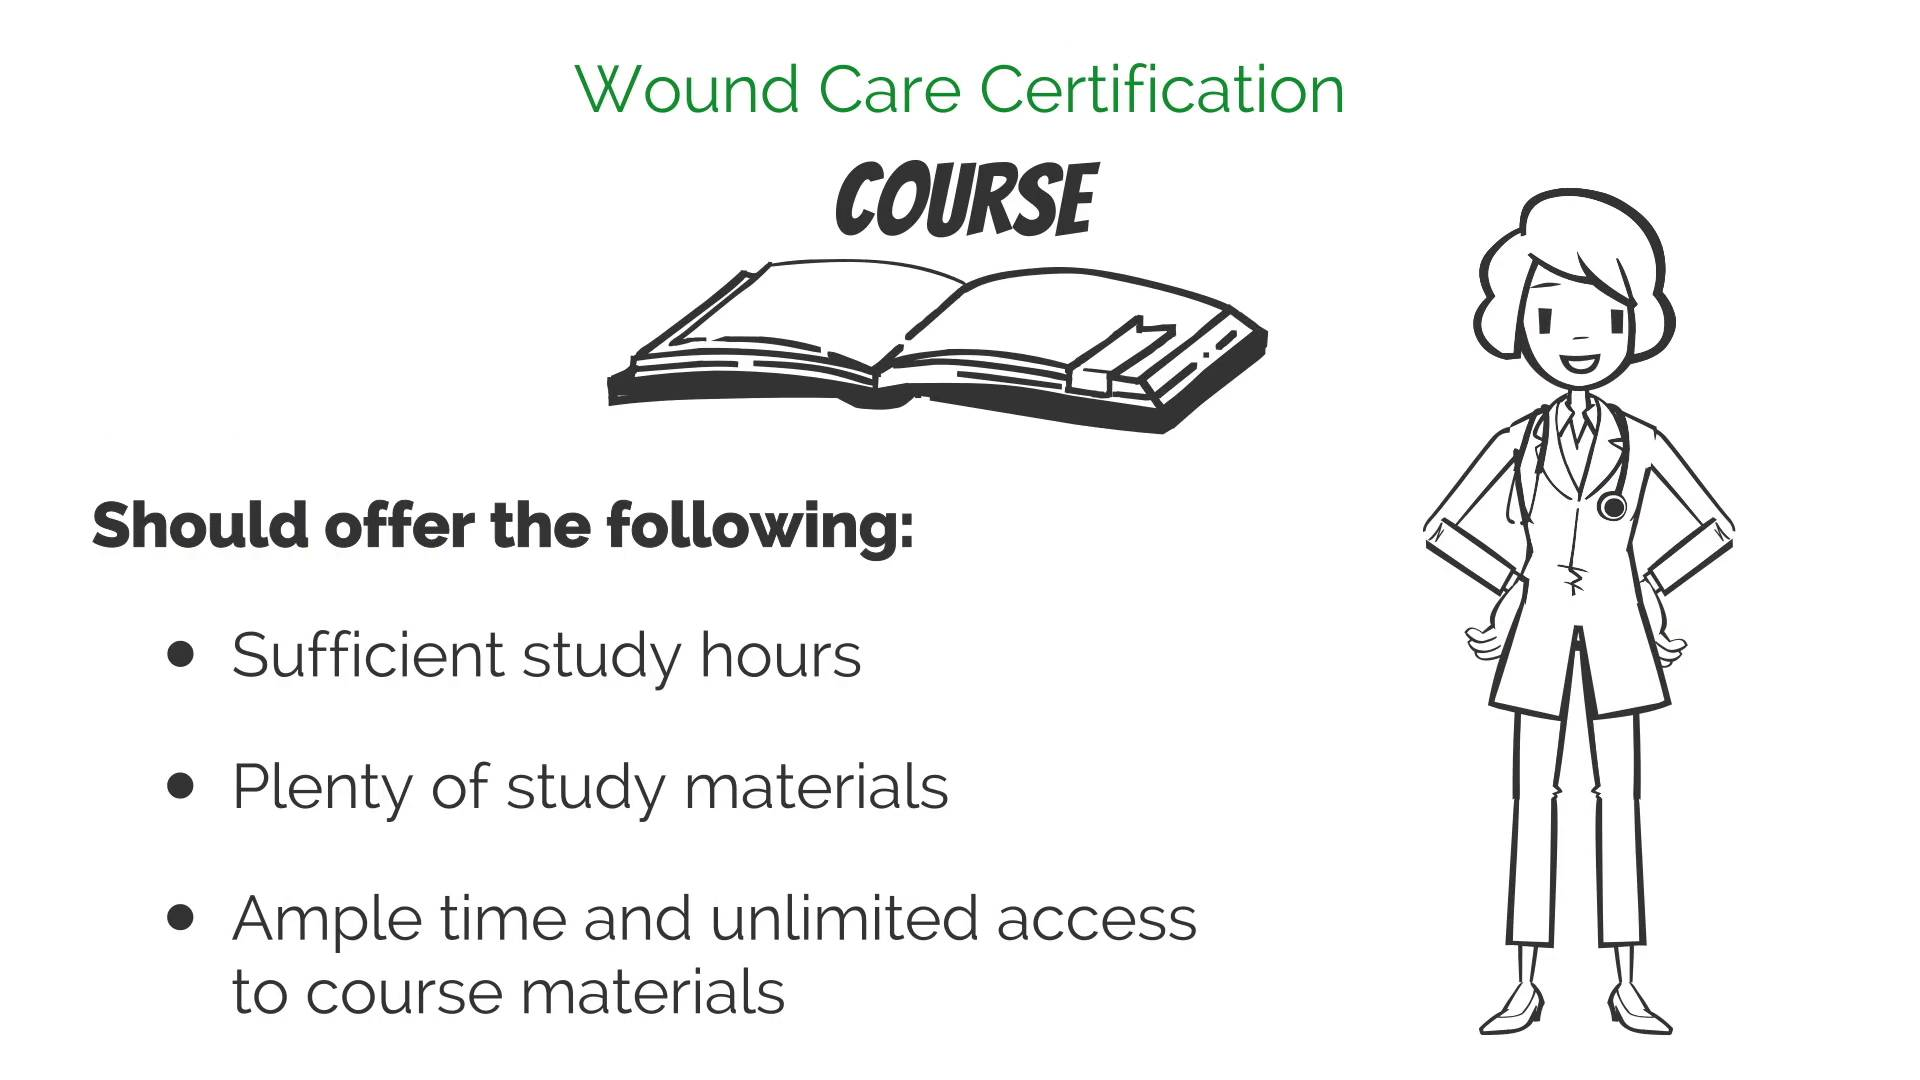 Cna ma wound certification course certified for nursing wound care xflitez Gallery